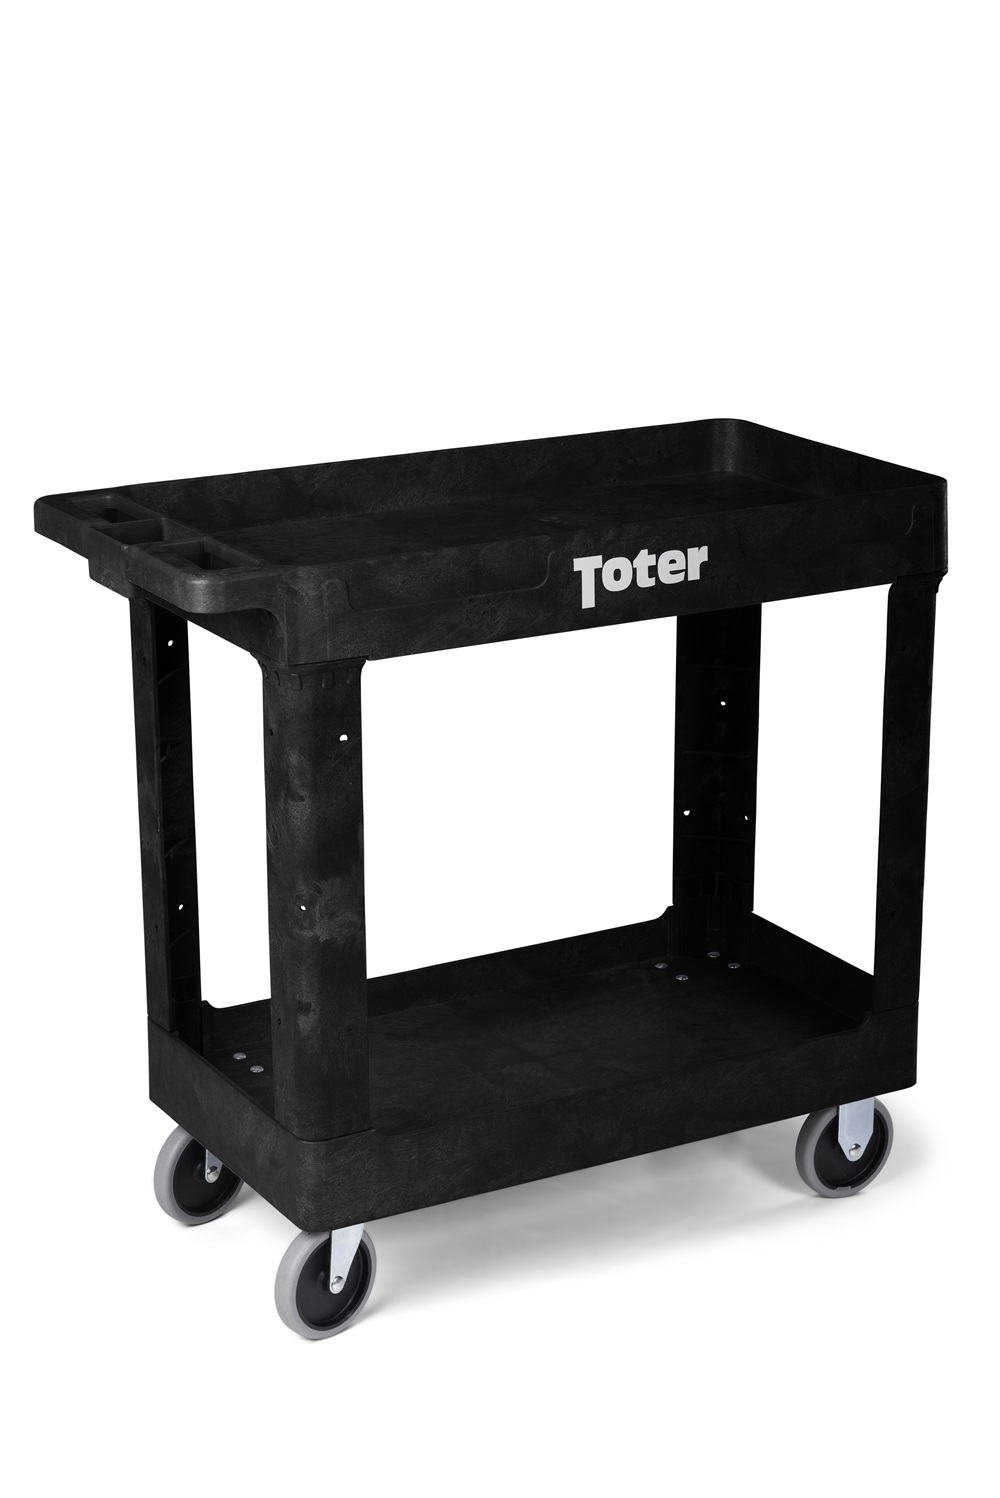 Buy Toter Material Handling Utility Cart With Lipped Top And Straight Handle